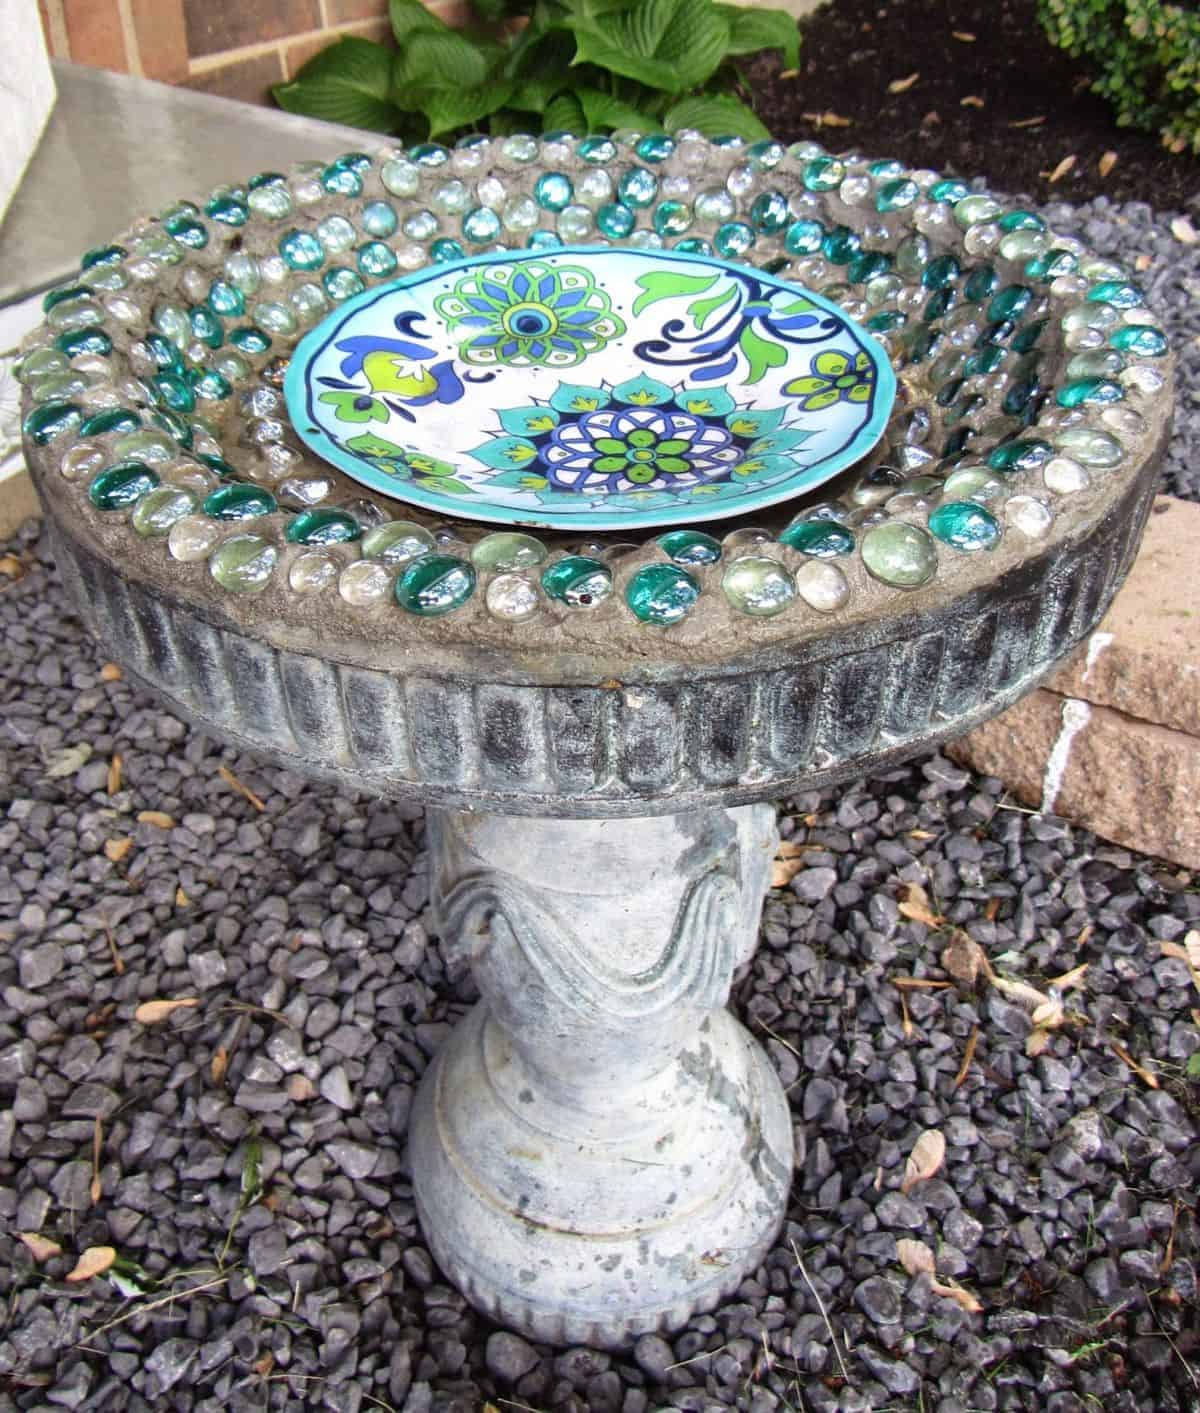 The Glass Gems Concrete Bird Bath